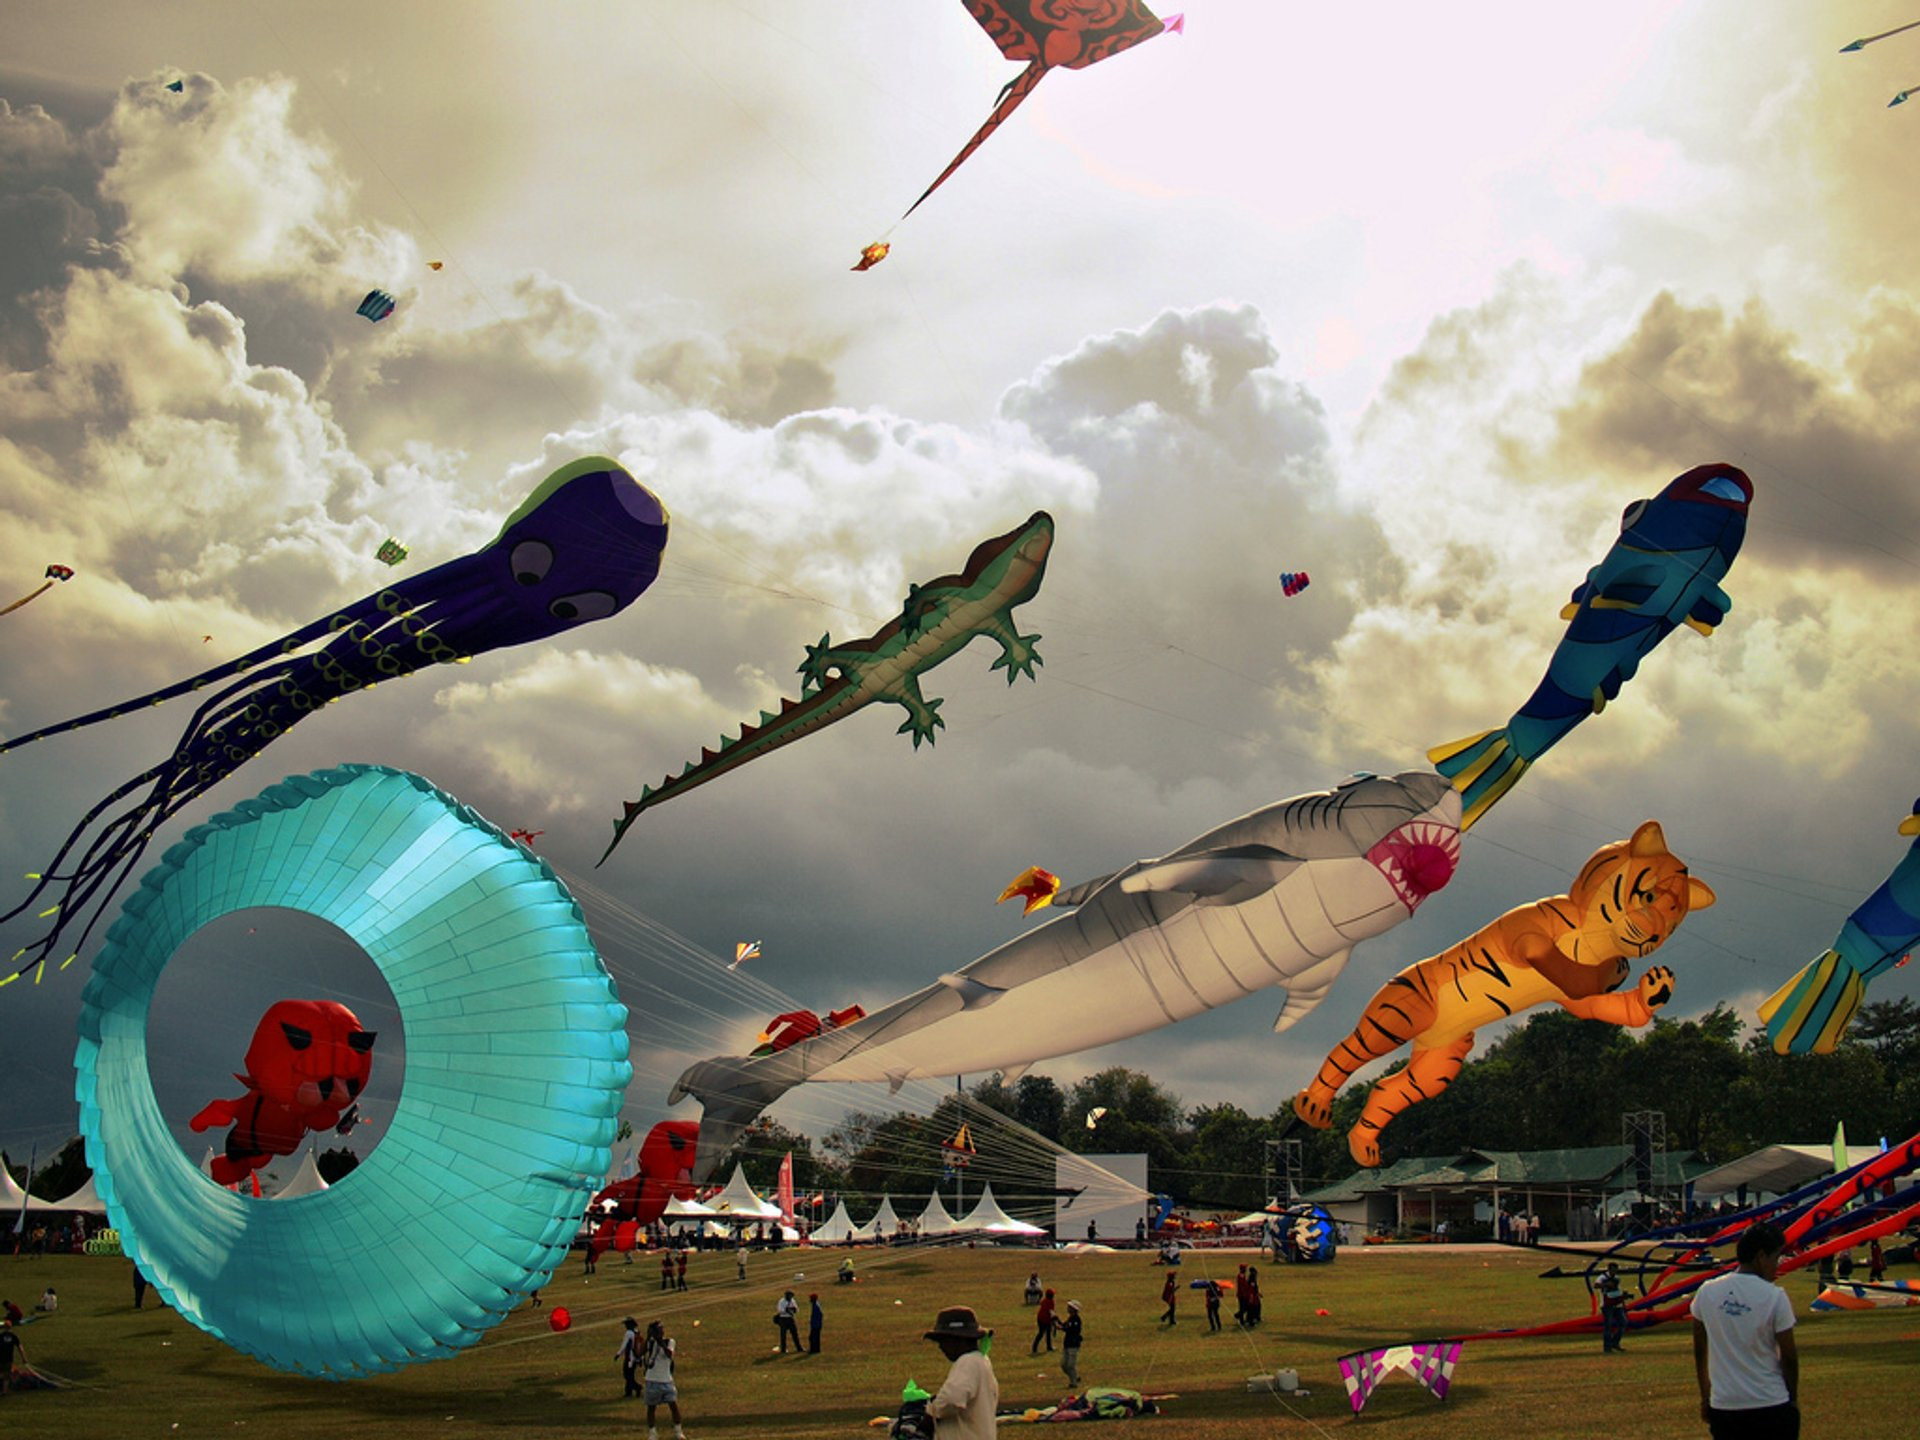 Traditional Kite Flying in Malaysia - Best Season